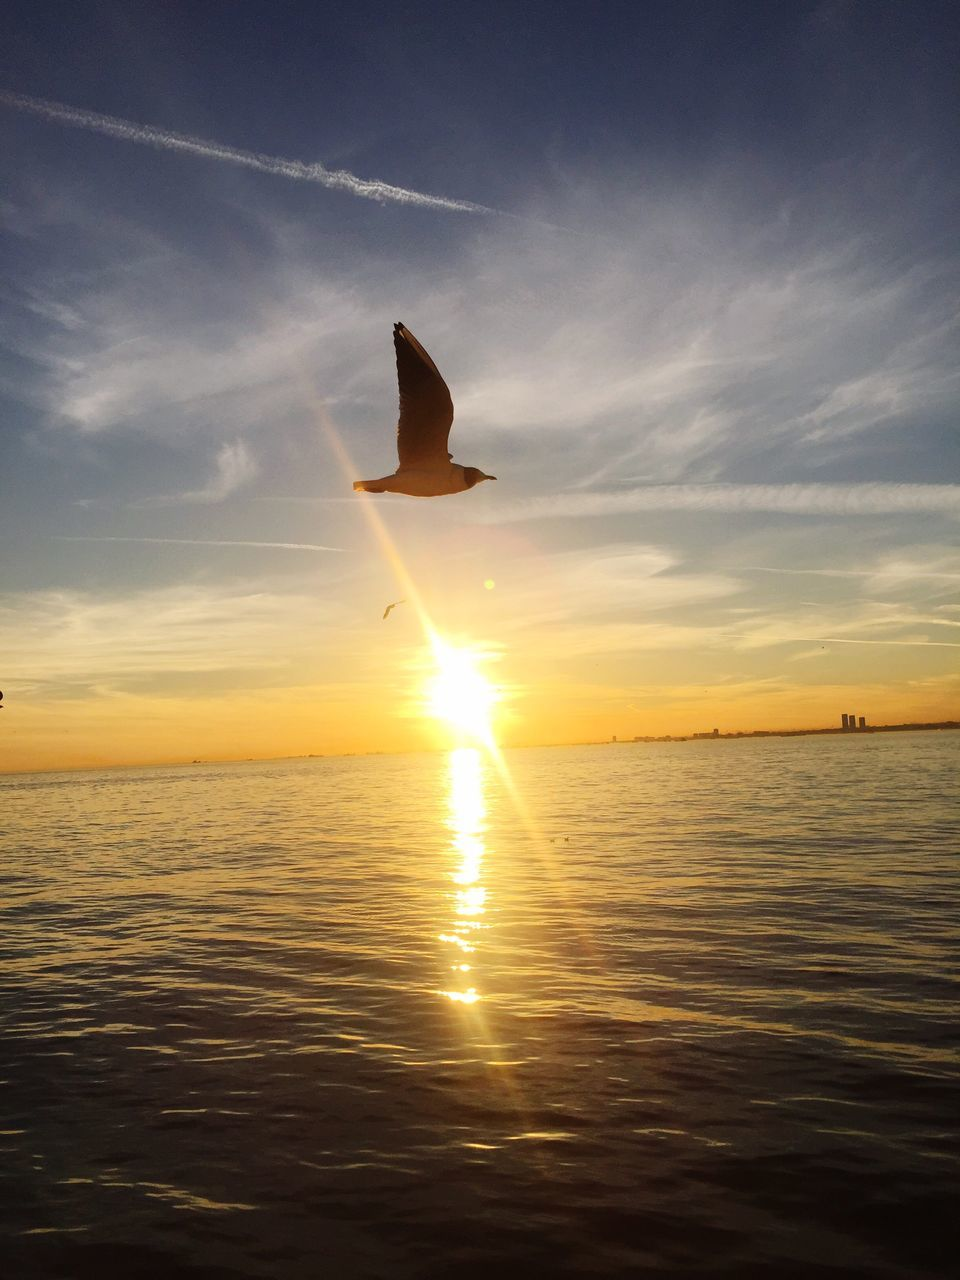 sunset, sea, nature, sun, beauty in nature, water, sky, scenics, silhouette, horizon over water, tranquil scene, tranquility, sunlight, flying, no people, outdoors, day